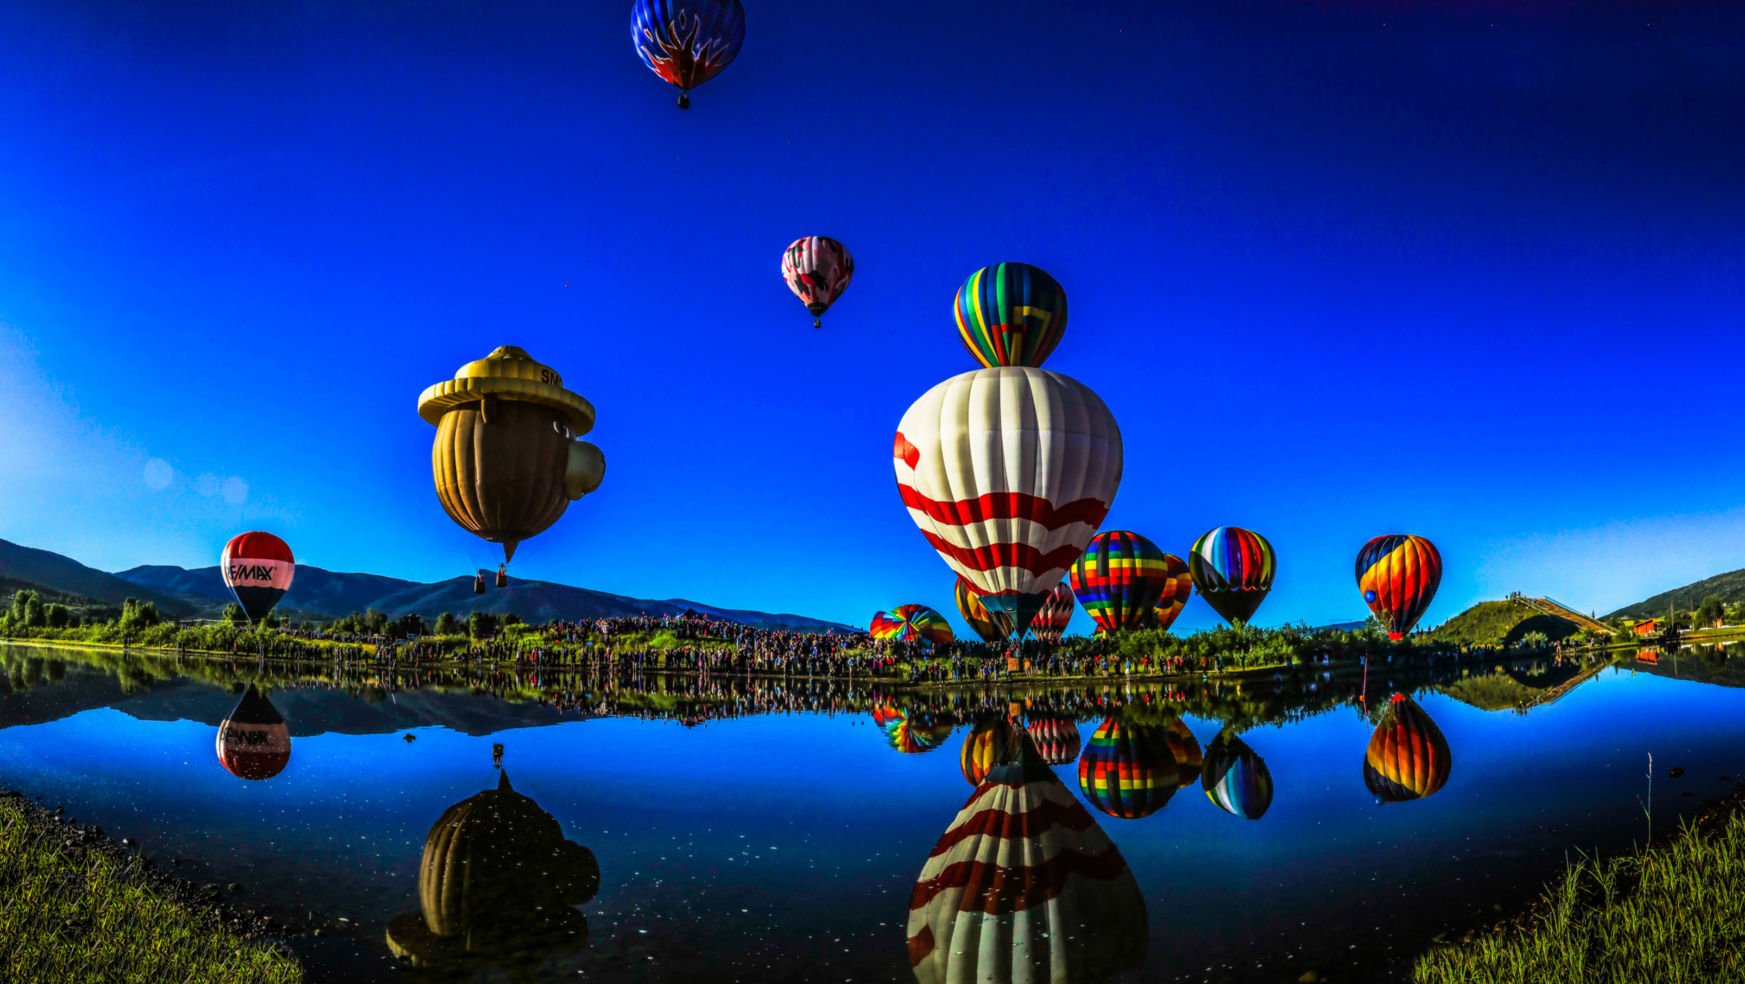 Annual Hot Air Balloon Rodeo in Steamboat Springs, Colorado